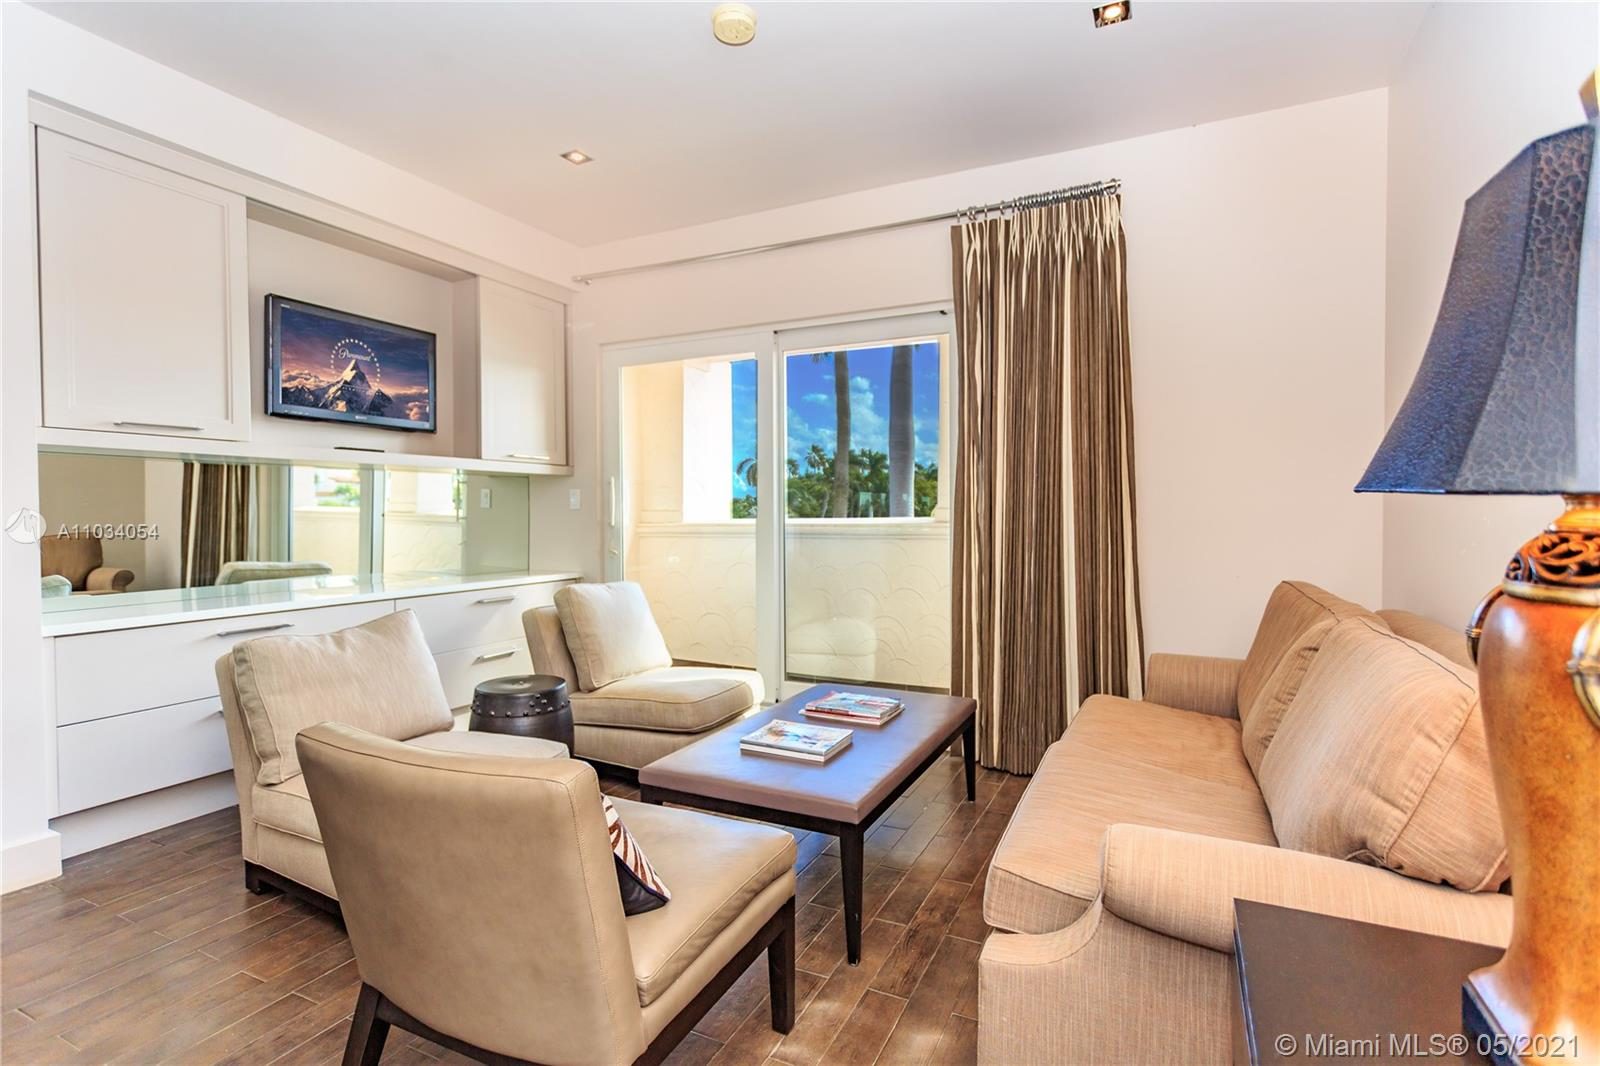 40205  Fisher Island Dr #40205 For Sale A11034054, FL